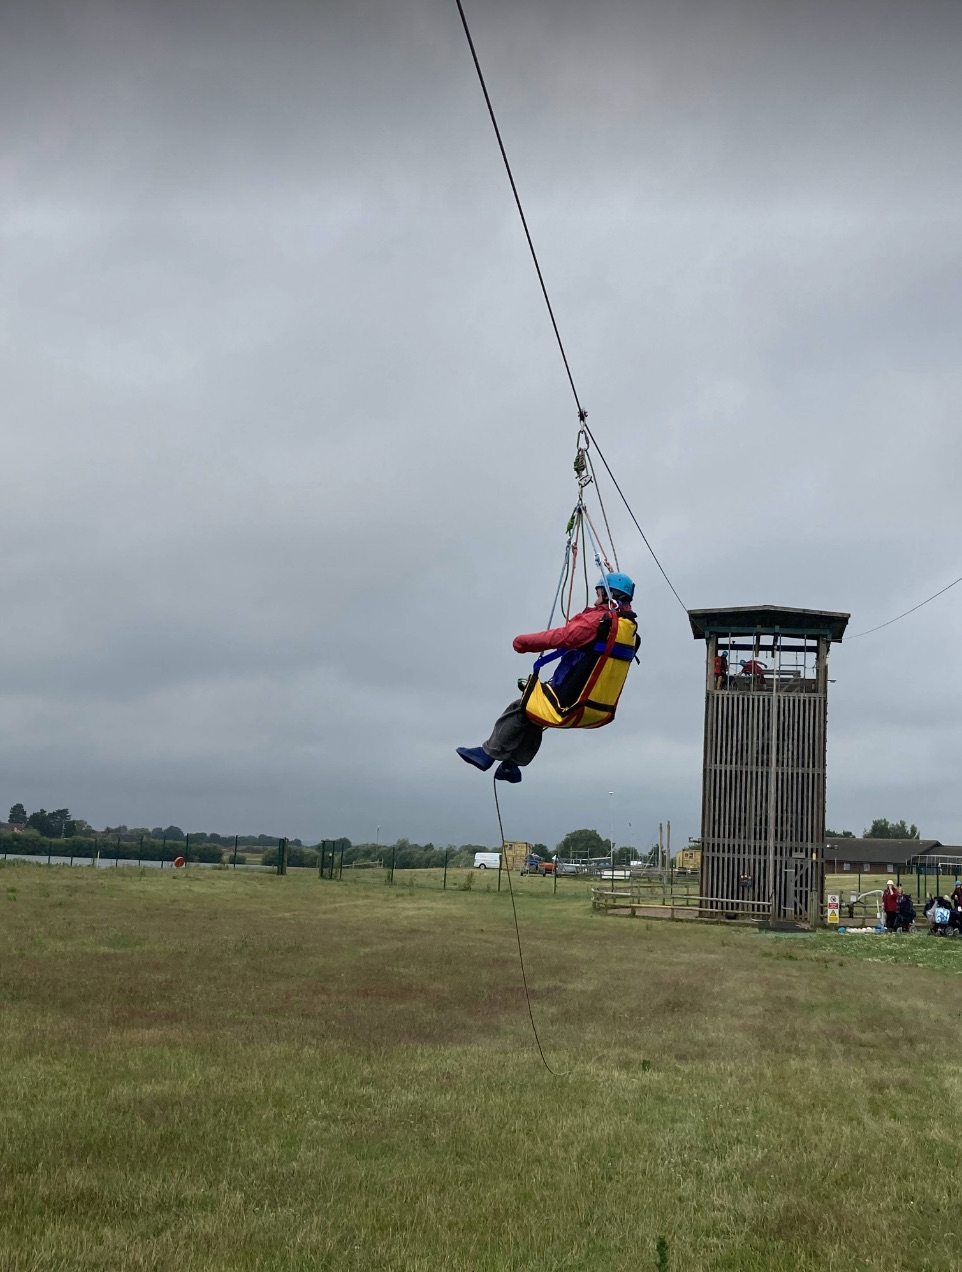 A young person sits in a harness while enjoying ziplining at a Whizz-Kidz club